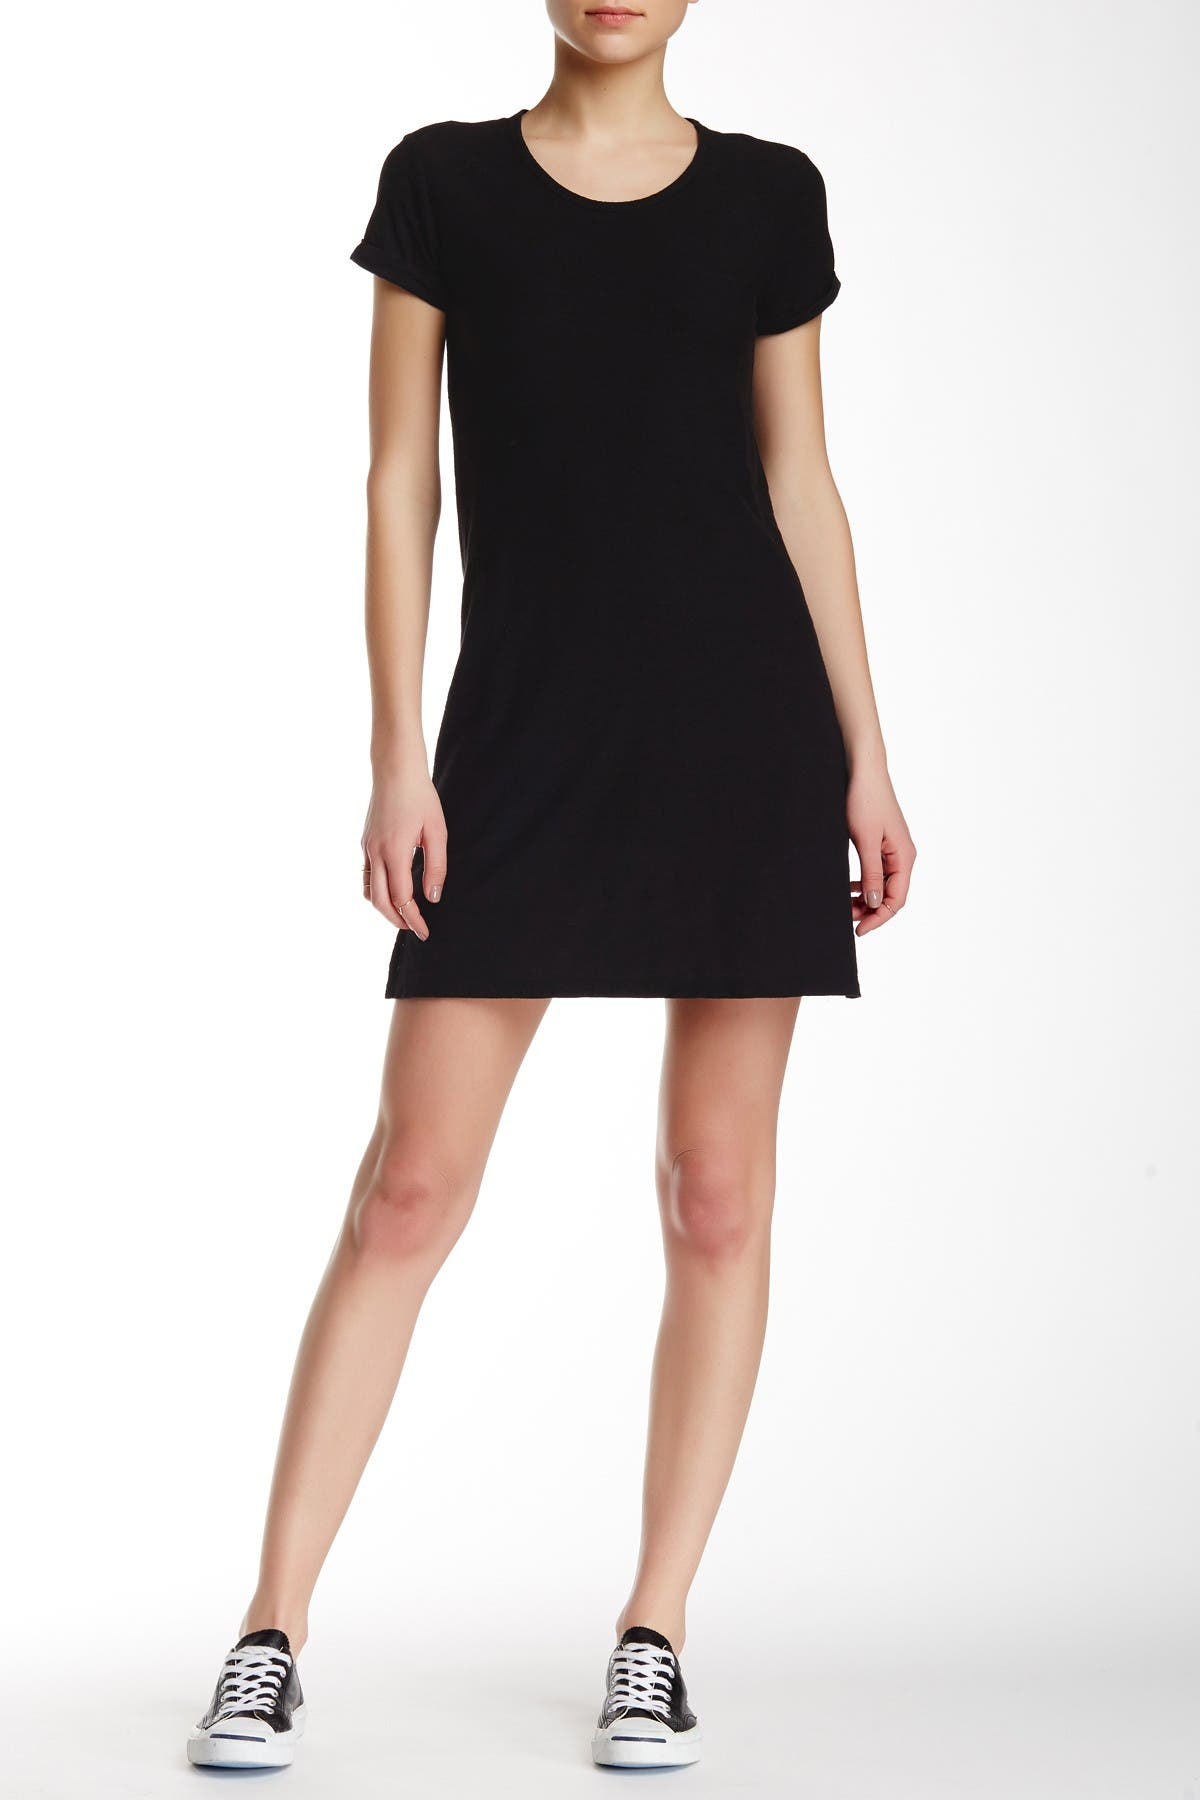 Image of James Perse Rolled Sleeve T-Shirt Dress